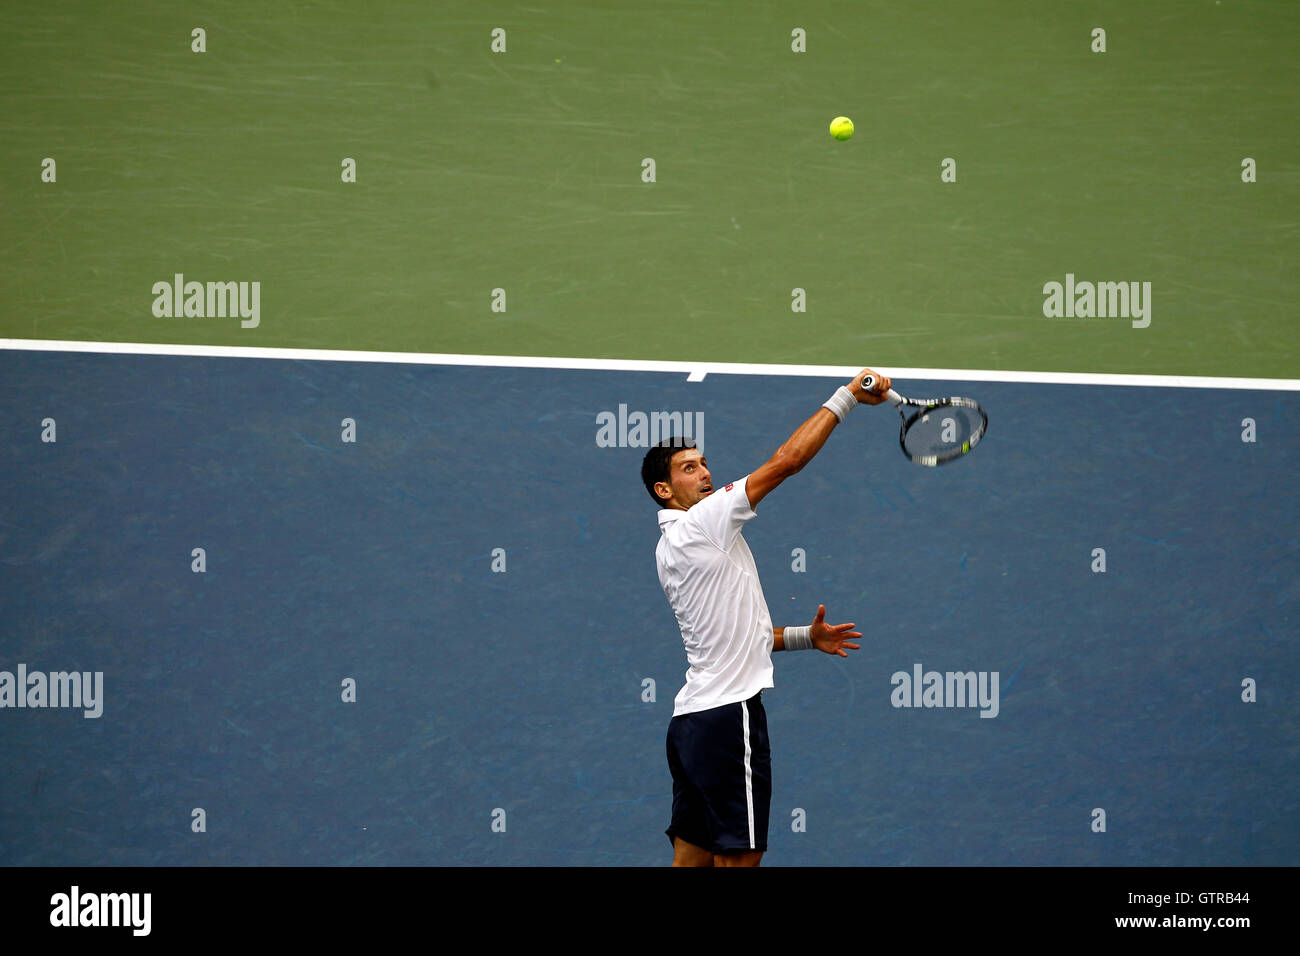 New York, United States. 09th Sep, 2016. Novak Djokovic backhands an overhead during his semi final match against - Stock Image